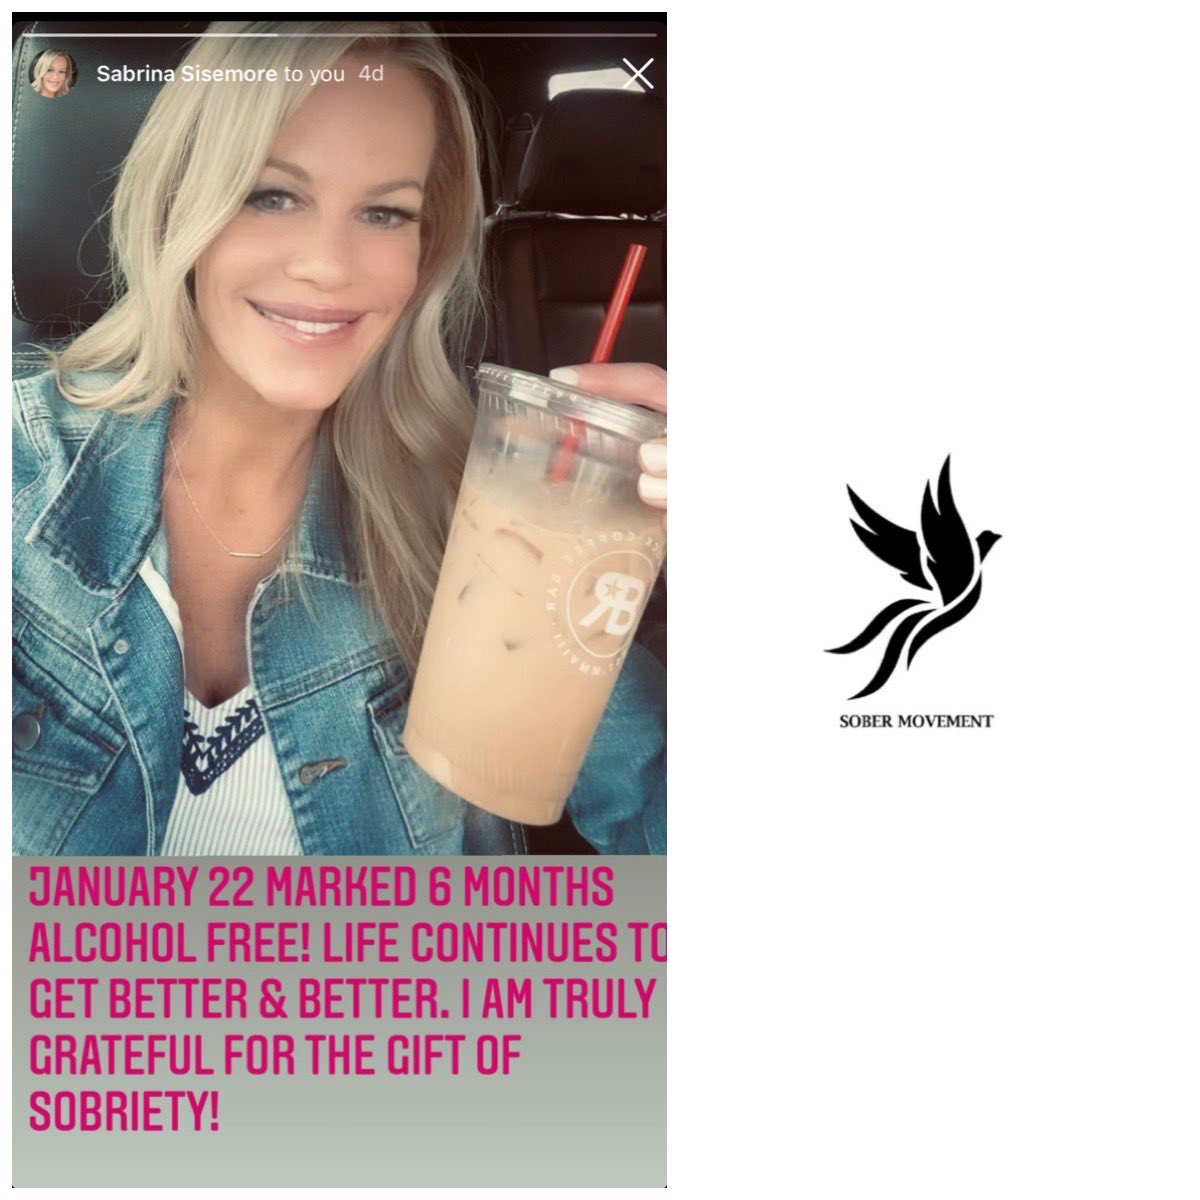 Here is (IG: sabrina_sisemore) with over 7 months clean and sober! Yes we can! #soberMOVEMENT #sober #soberlife #sobriety #soberliving #soberaf #recovery #rehab #drugfree #ODAAT #soberissexy #partysober #cleanandsober #motivation #inspiration #inspire #transformation #hope